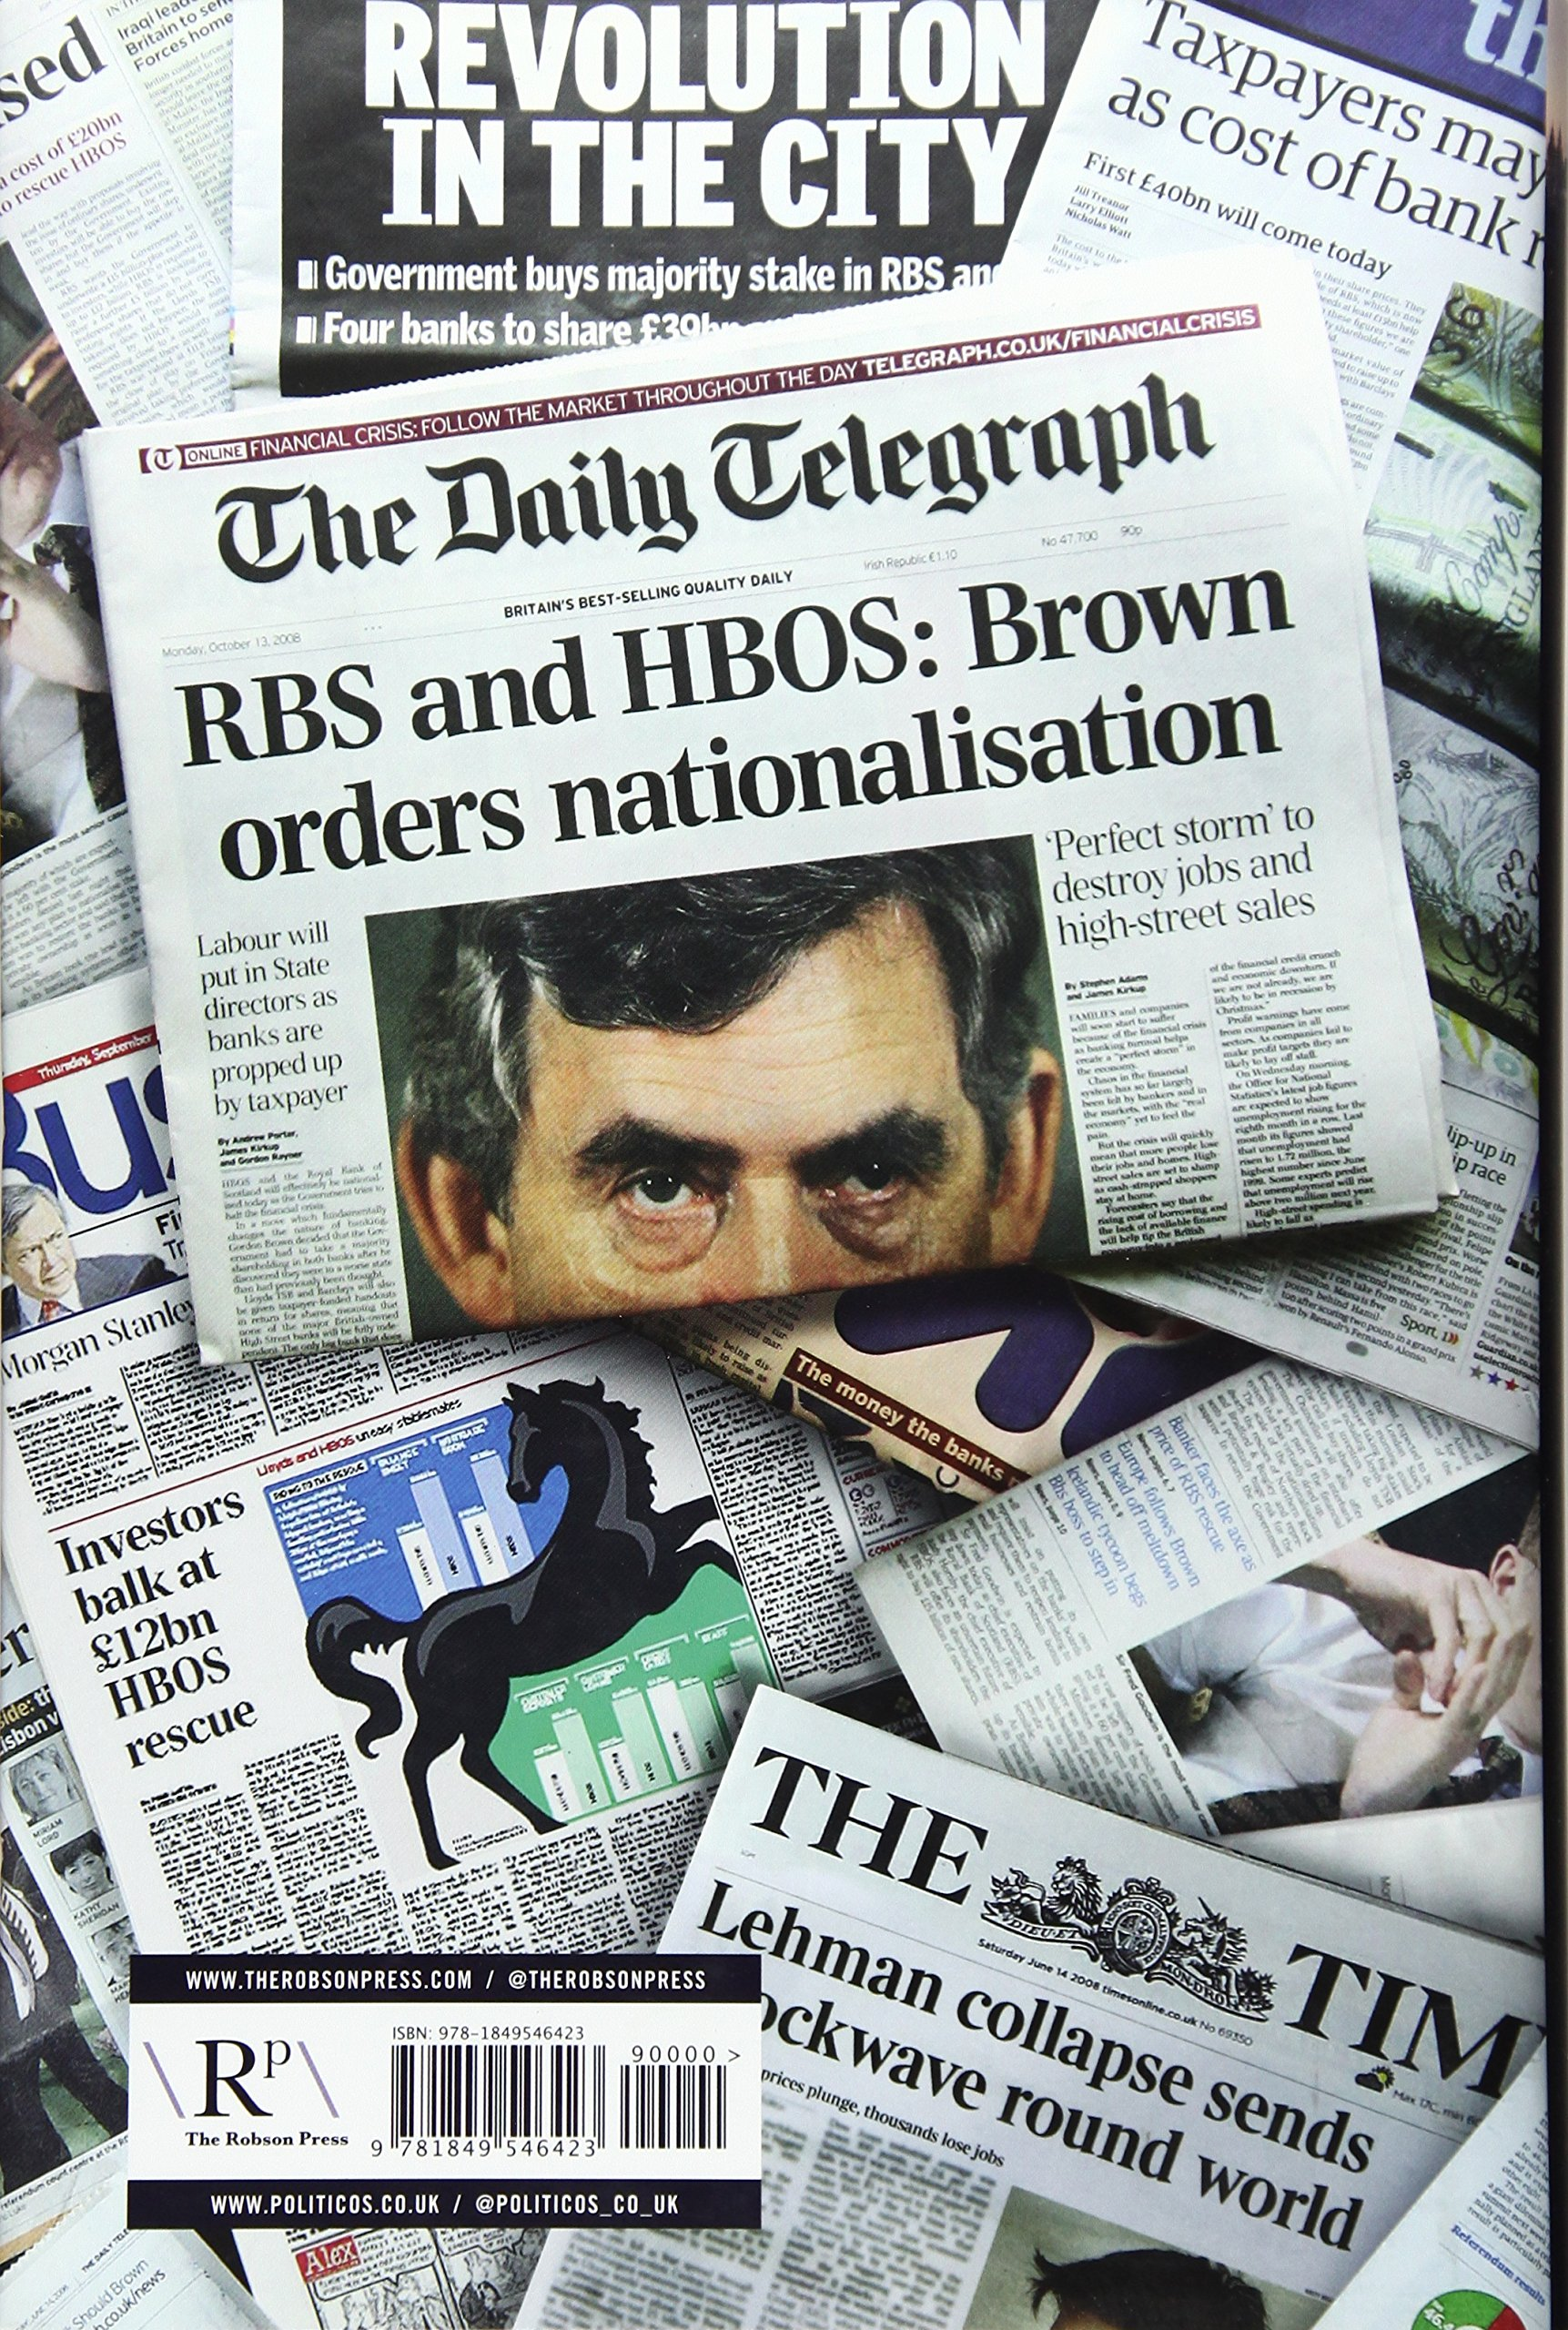 Black Horse Ride: The Inside Story of Lloyds and the Banking Crisis ...